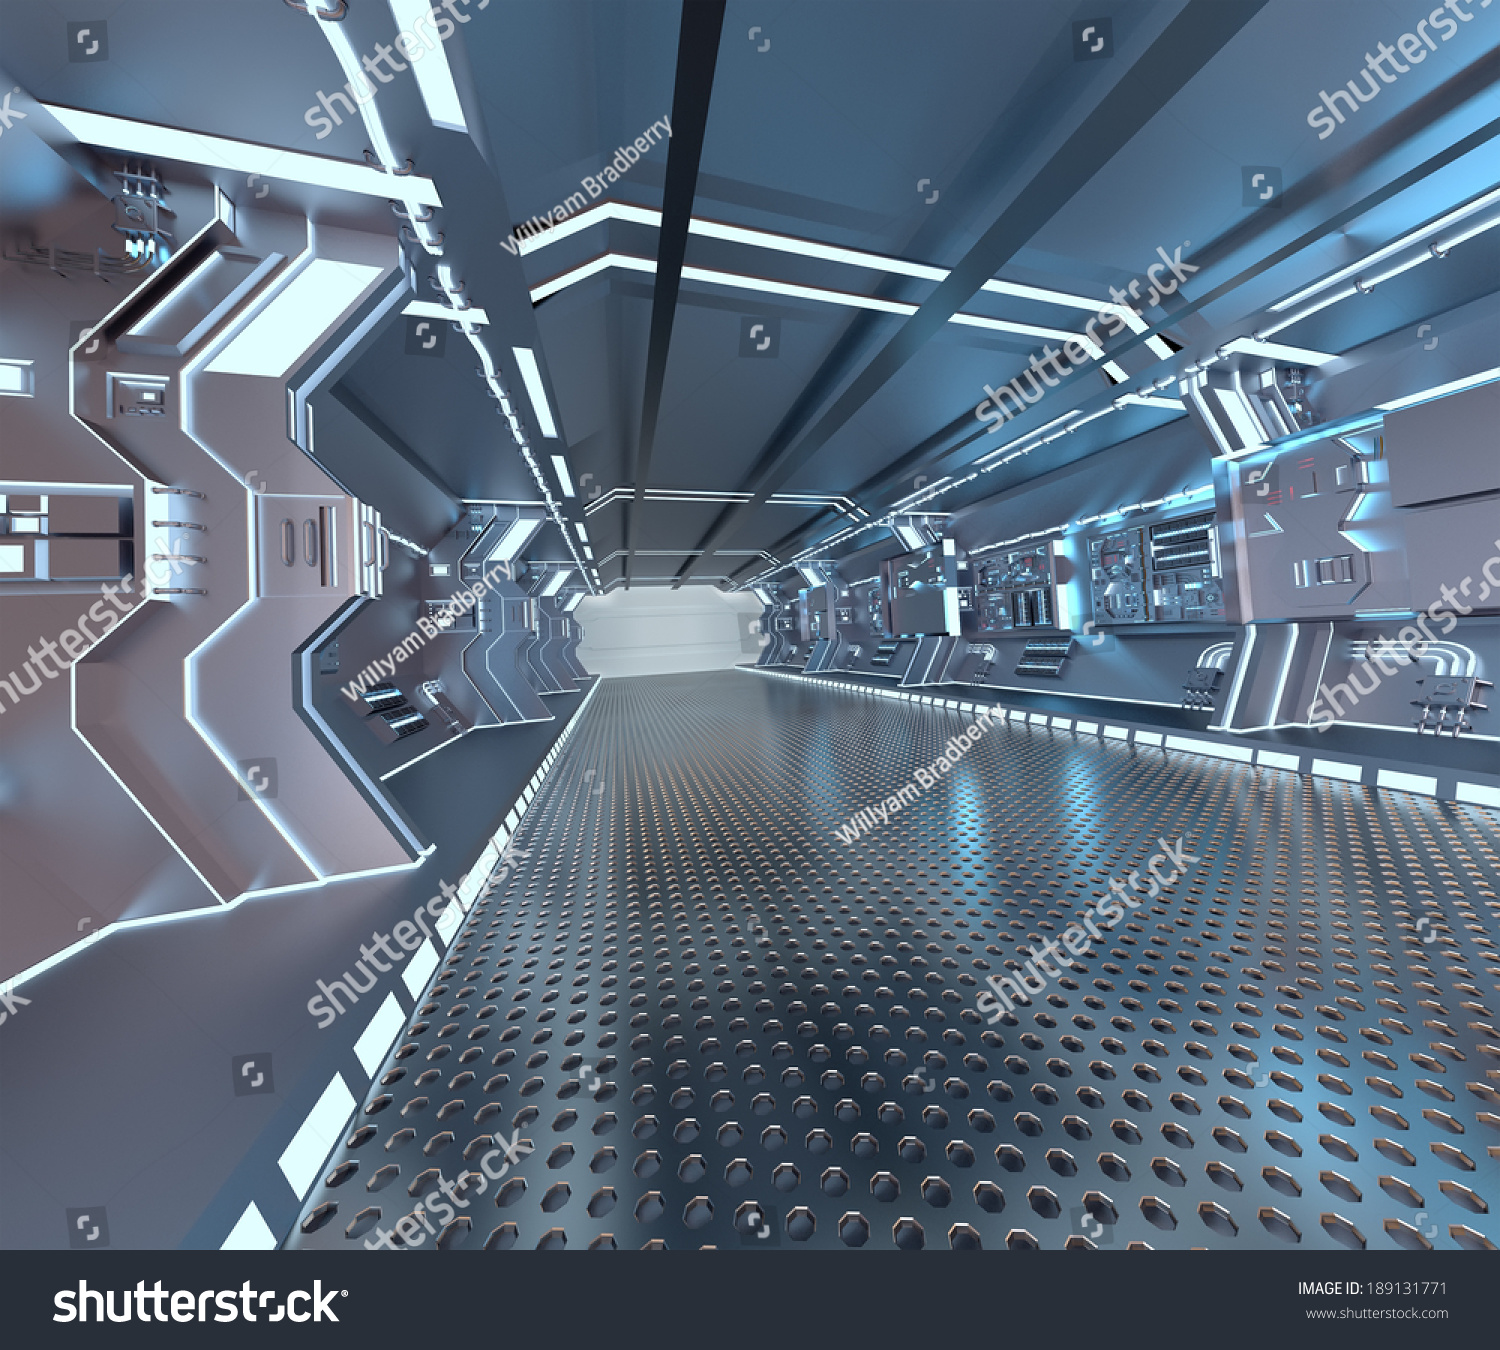 Futuristik Design Futuristic Design Spaceship Interior Metal Floor Stock